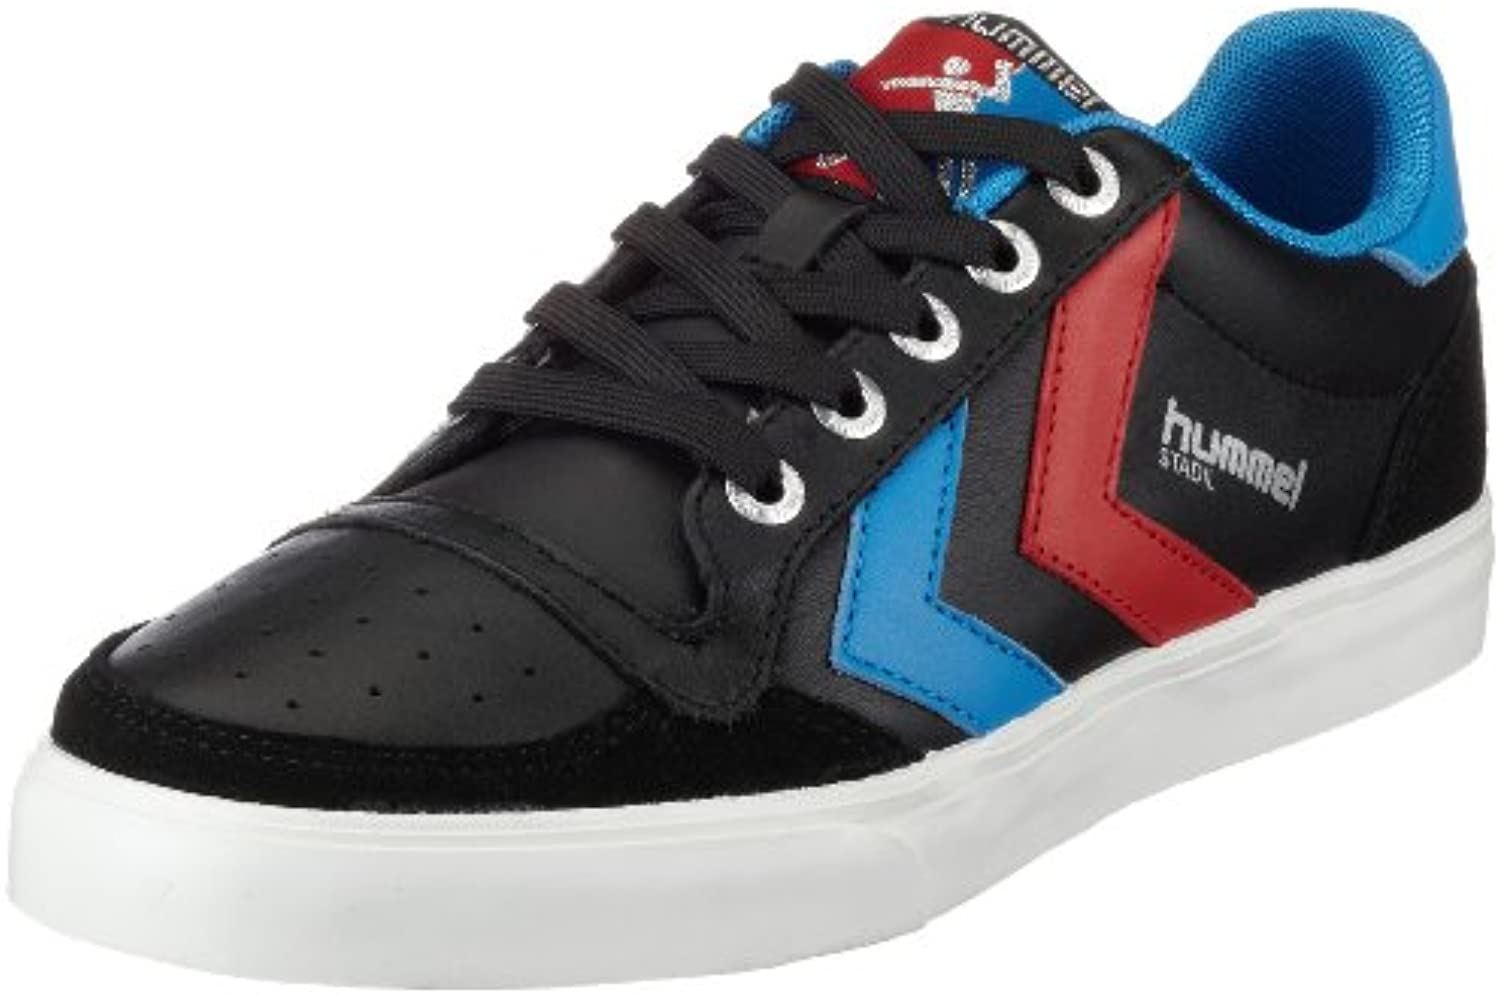 Hummel STADIL LOW 63 064 2640 Unisex   Erwachsene Fashion Sneakers